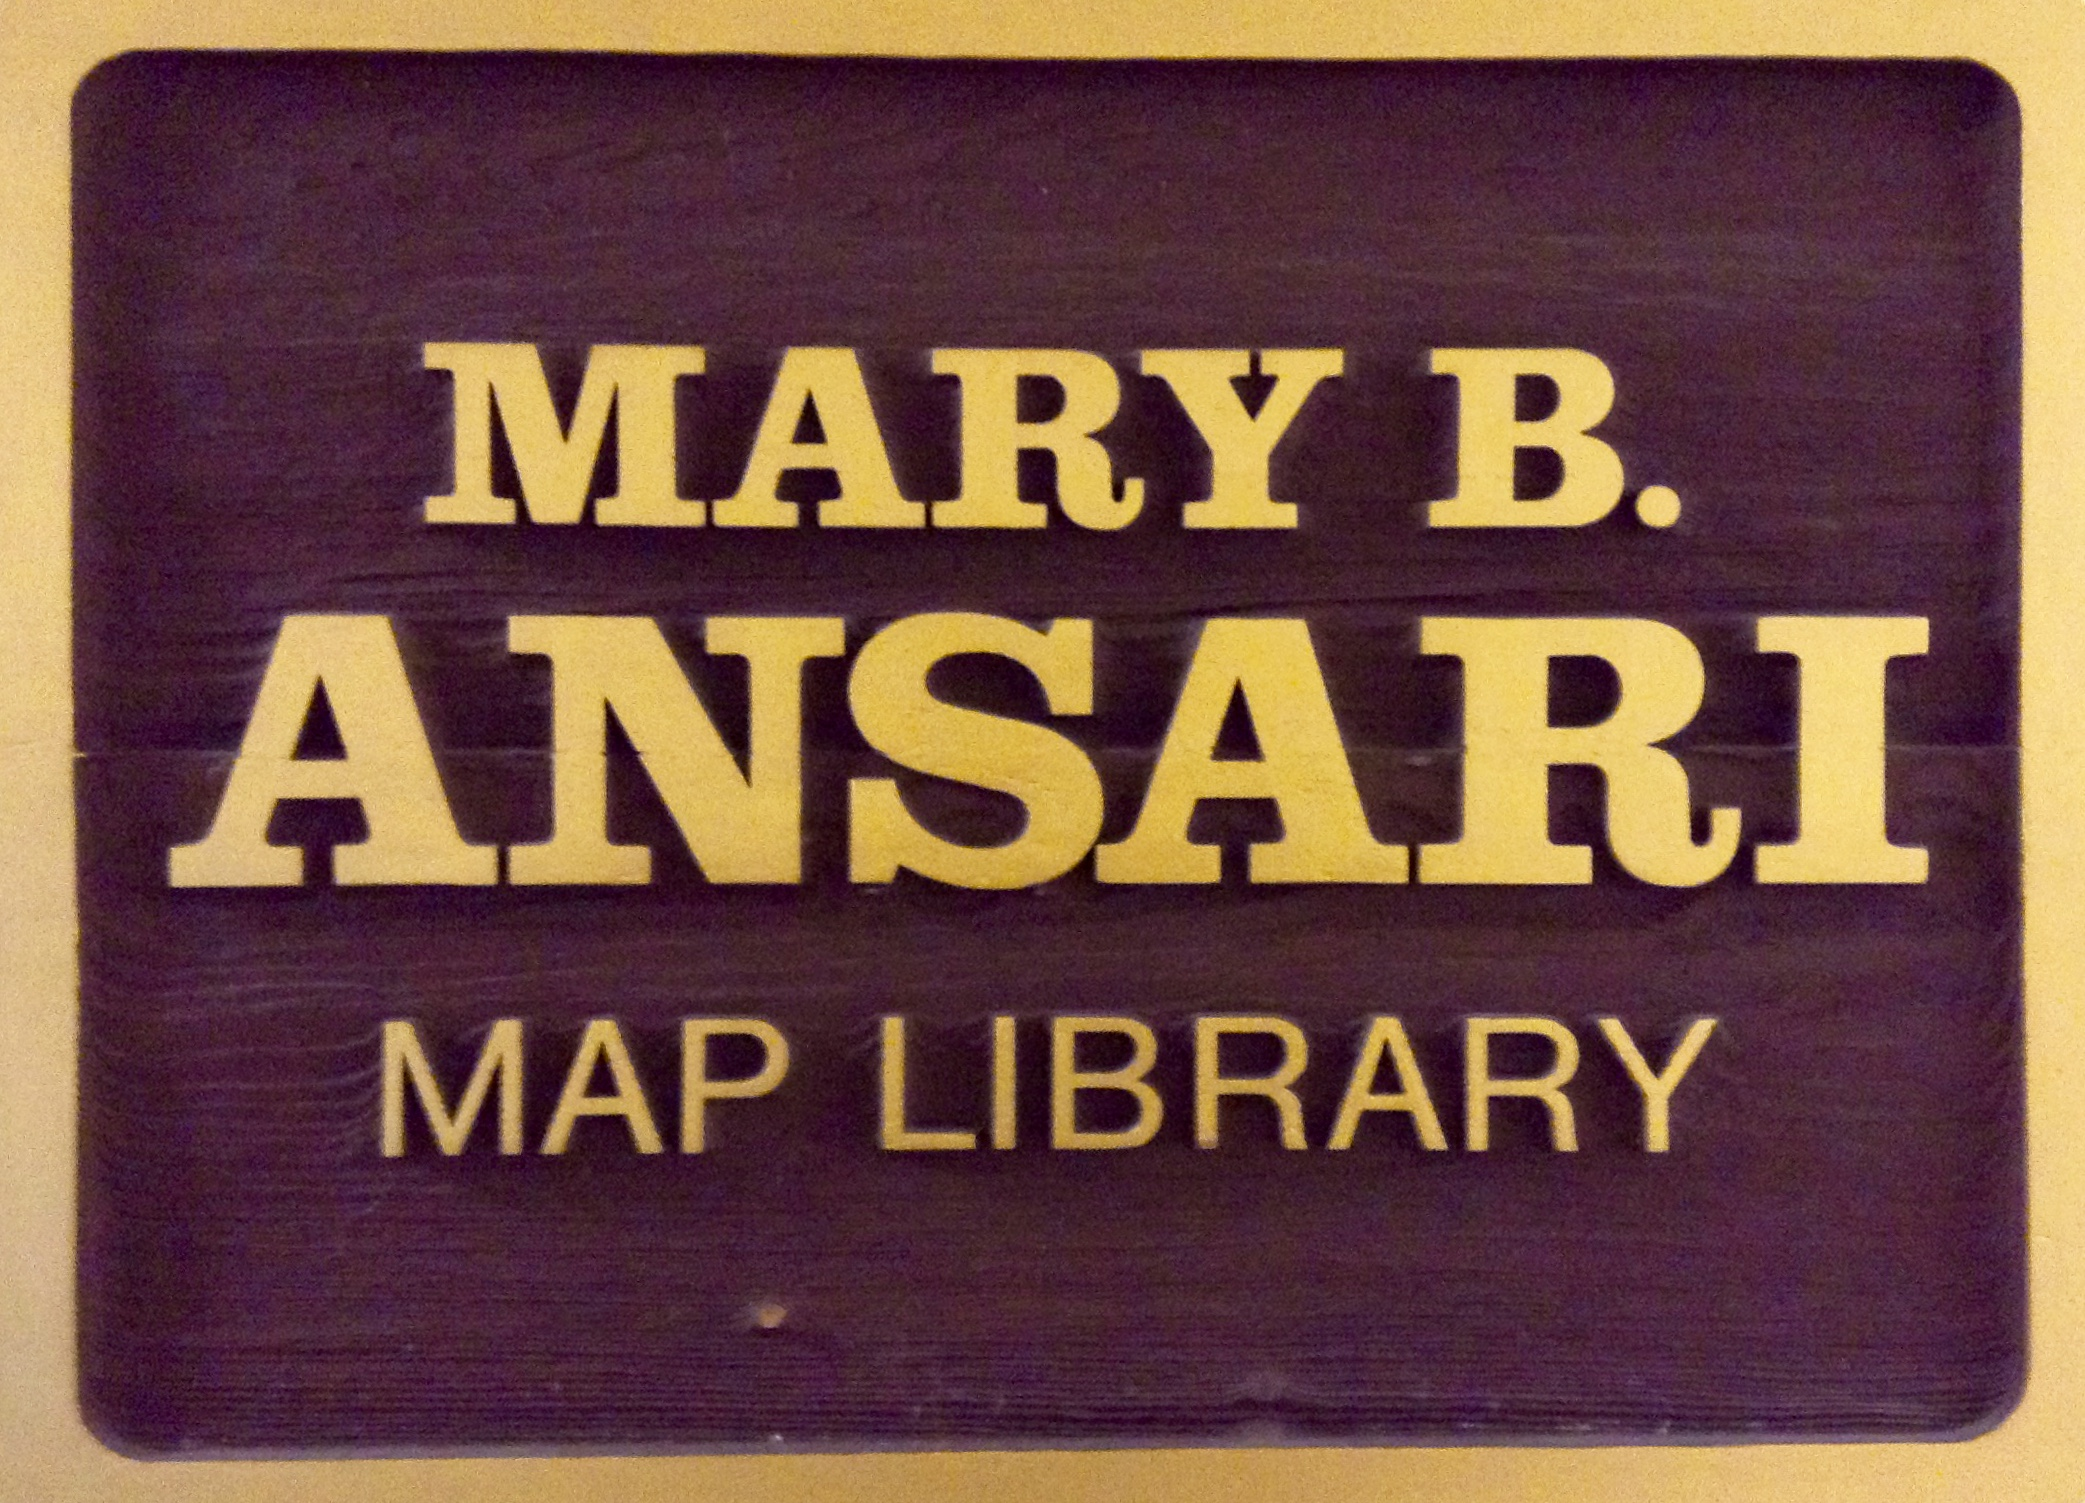 Image of the Mary B. Ansari Map Library plaque